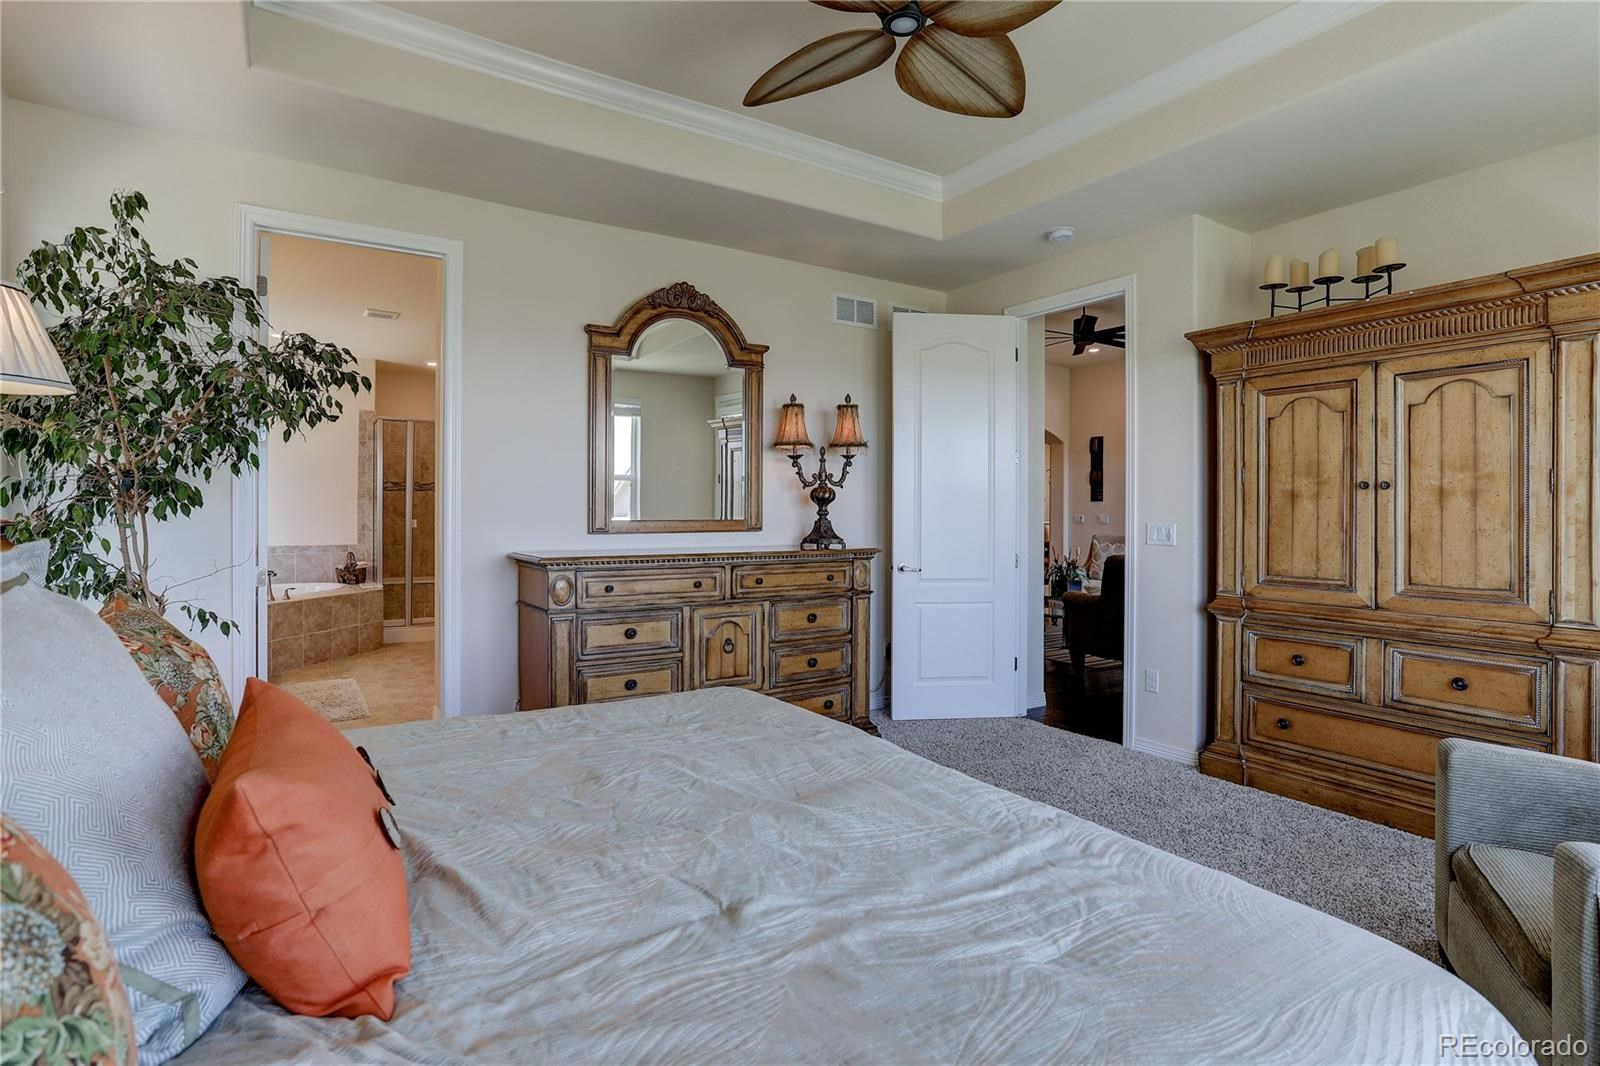 MLS# 8545425 - 18 - 7598 S Country Club Parkway, Aurora, CO 80016